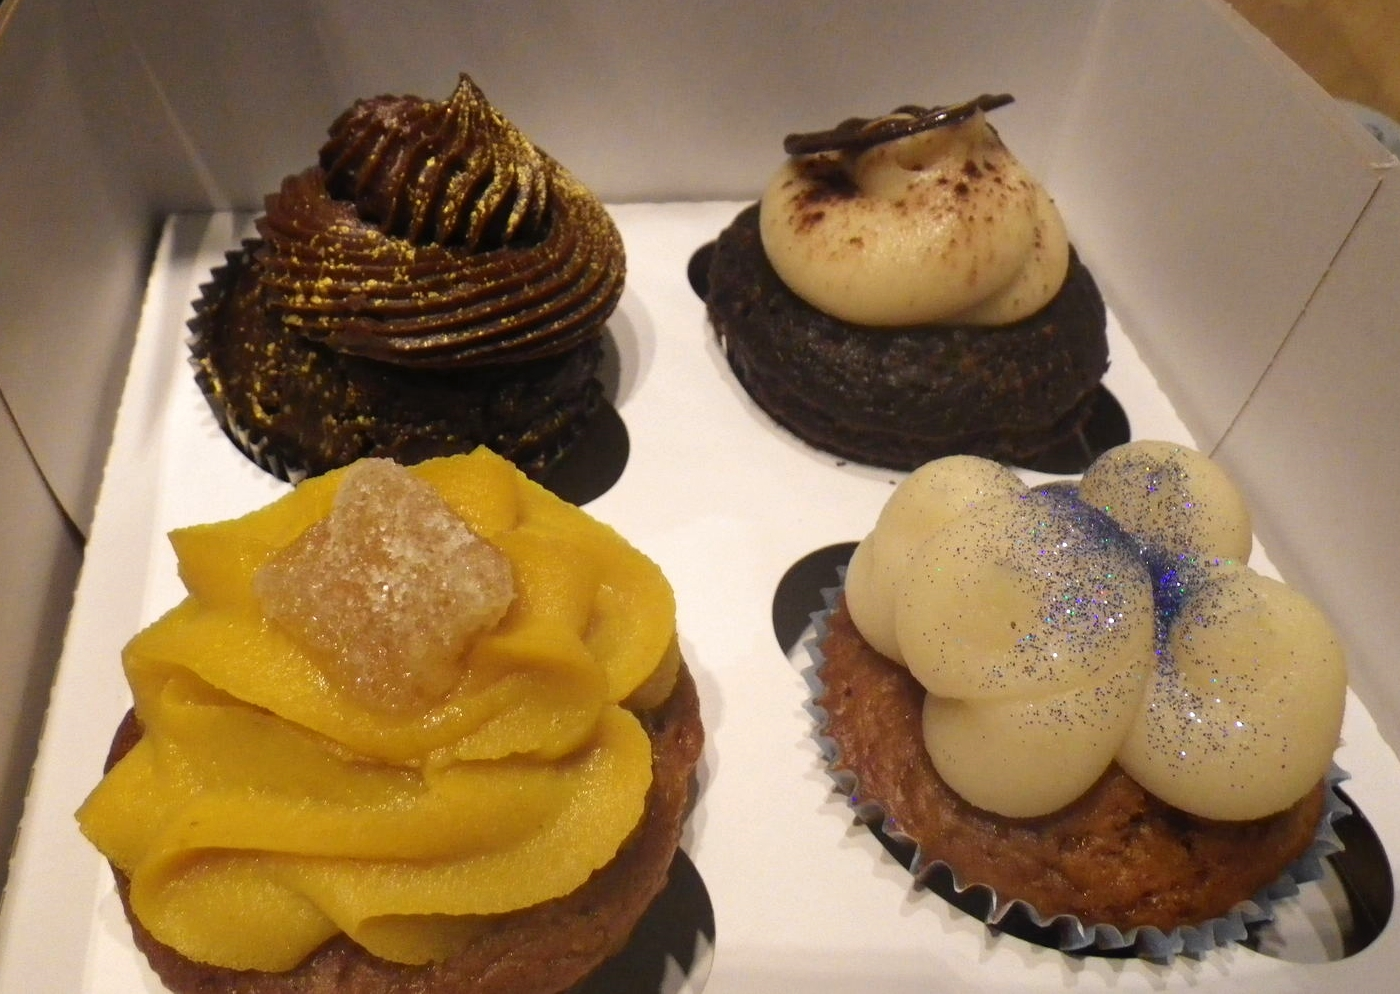 vegan cupcakes in Paris, from Vegan Folie's